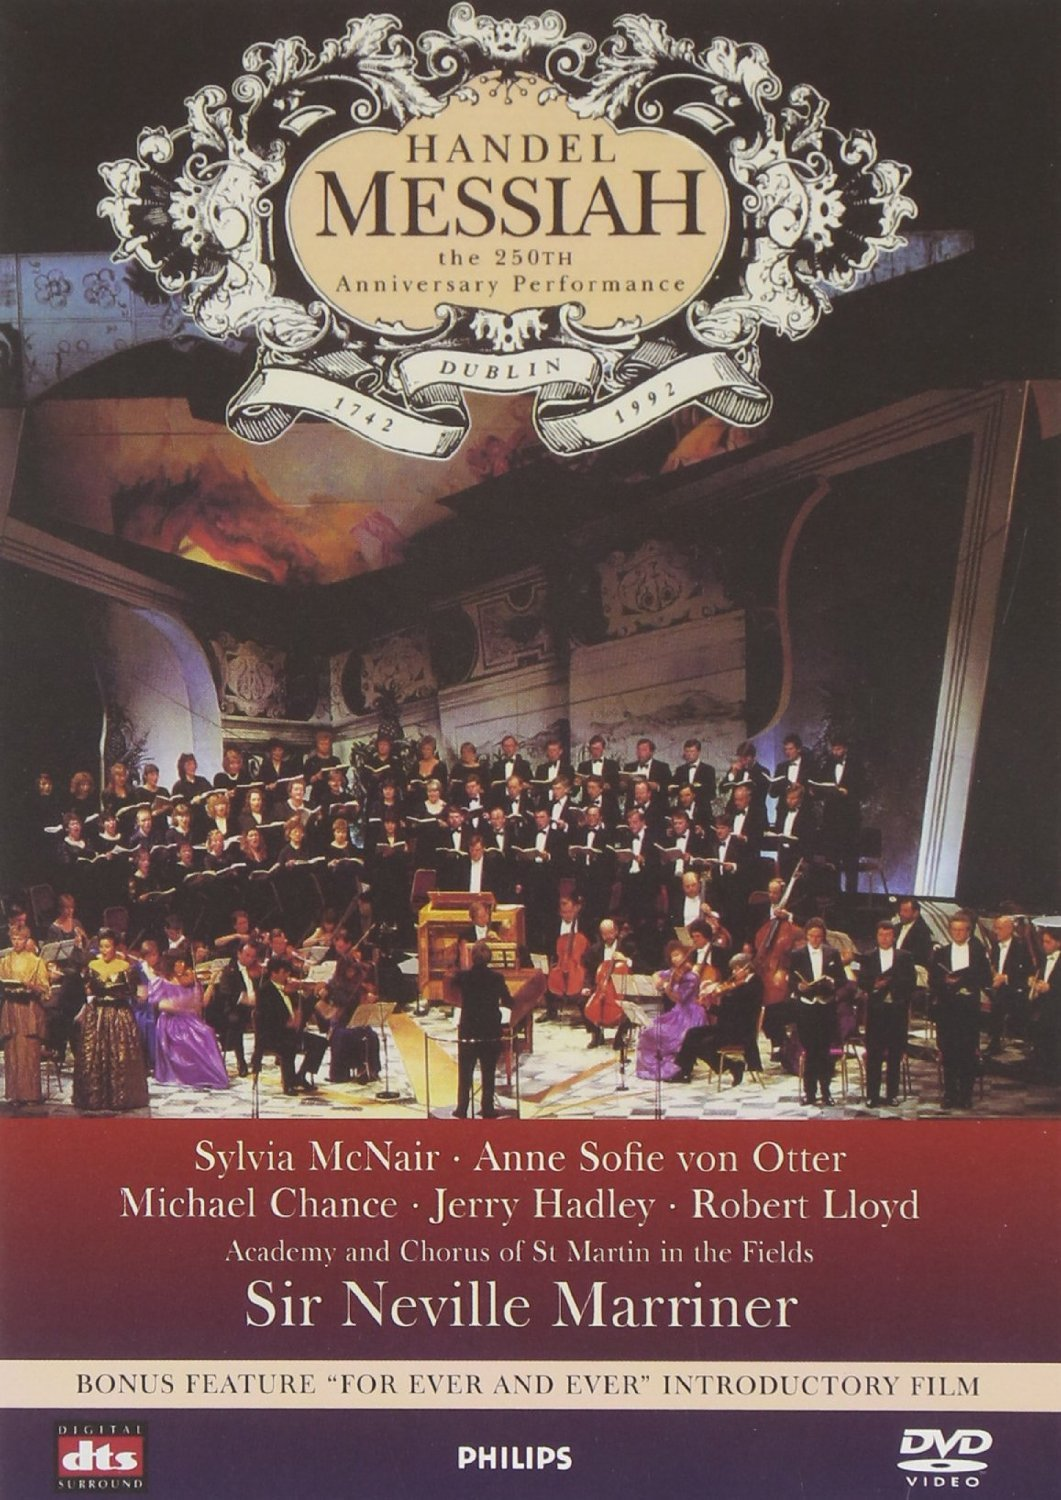 DVD : Jerry Hadley - Messiah: 250th Anniversary Performance (Anniversary Edition)